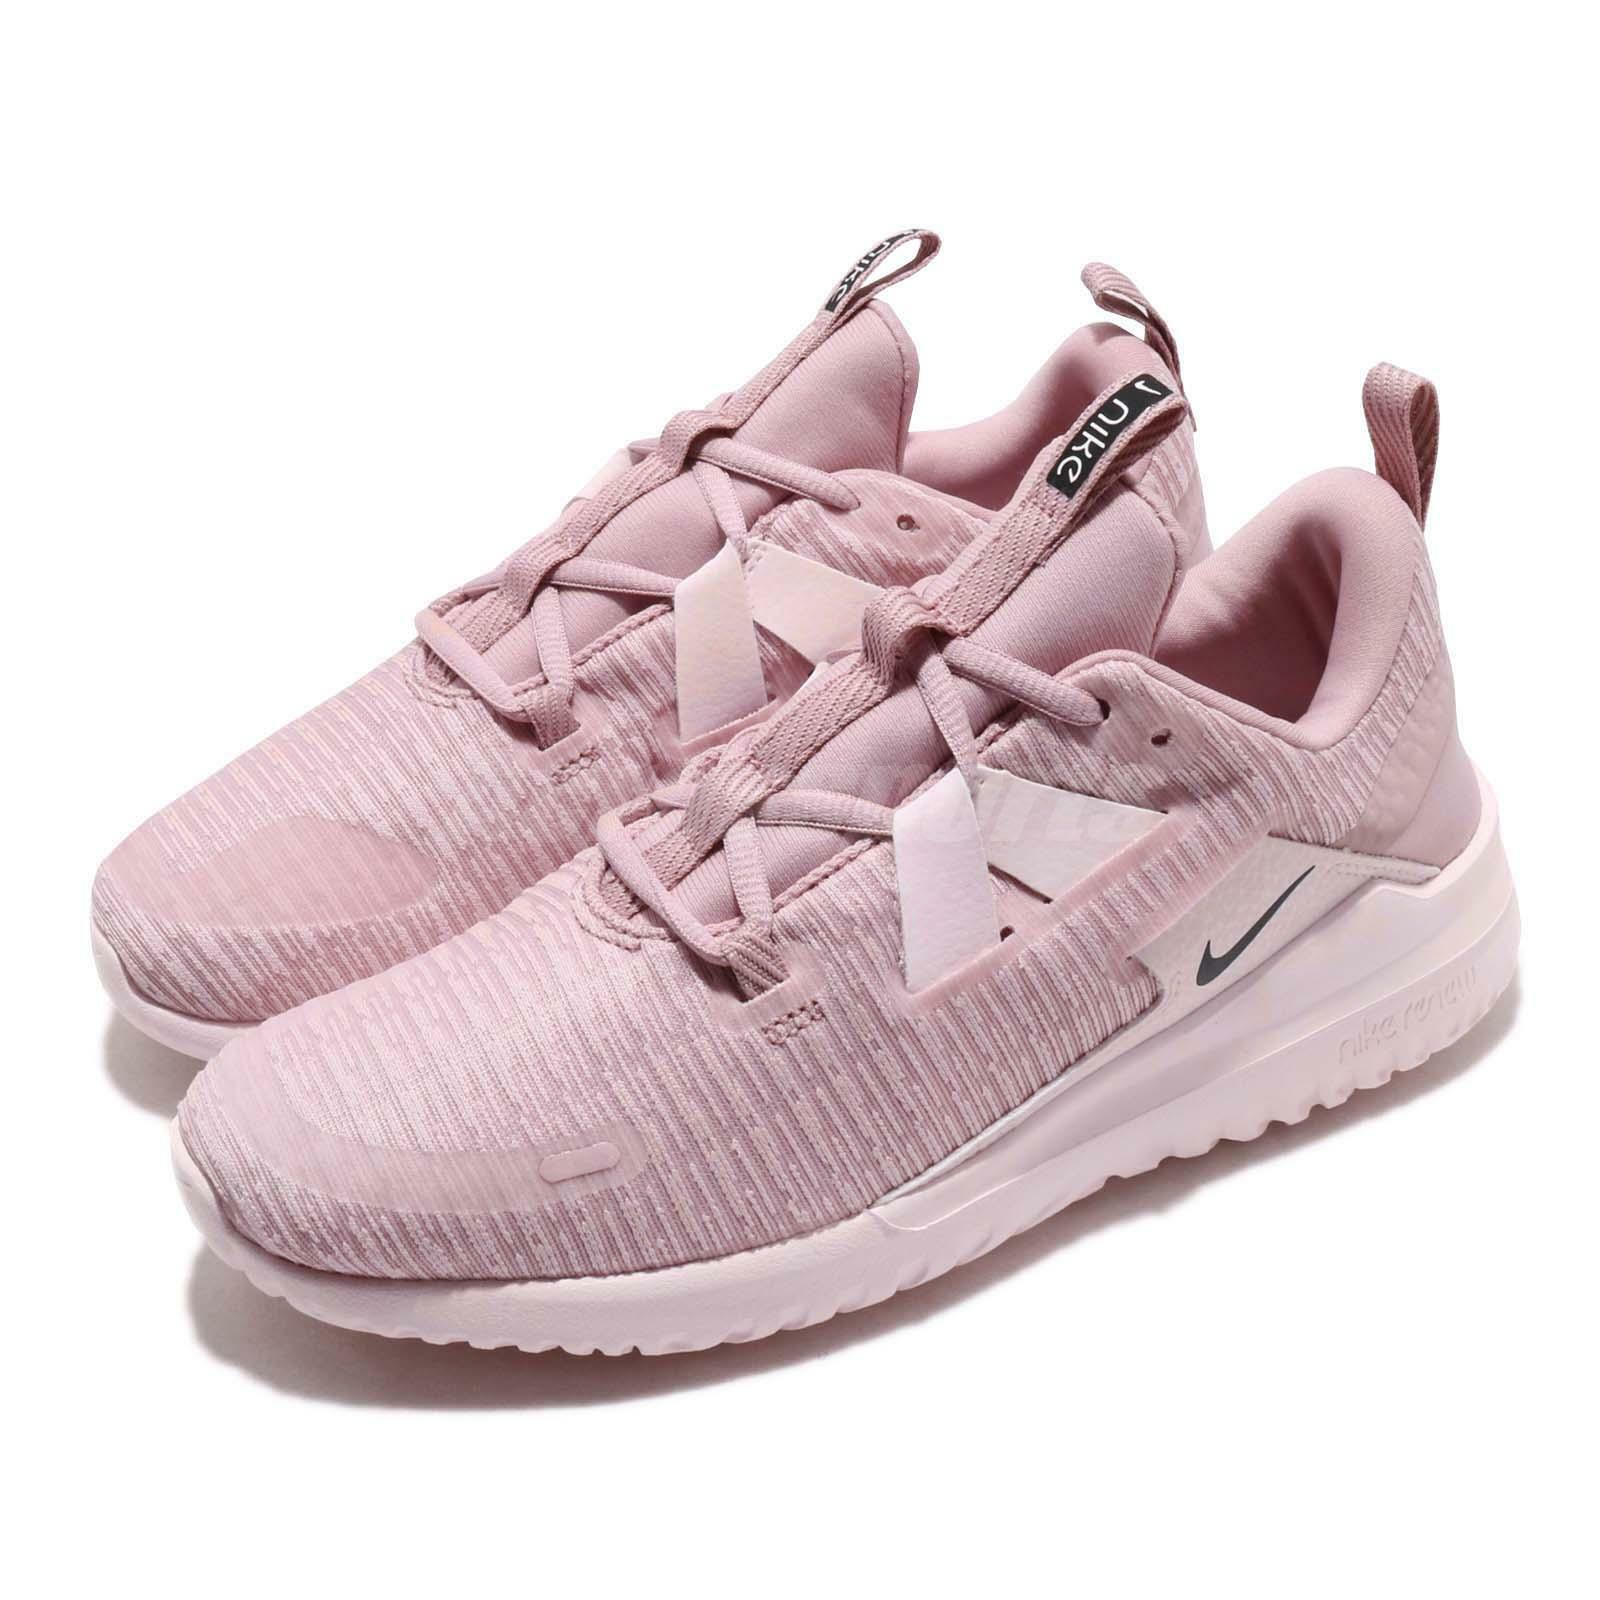 Nike Wmns Renew Arena Plum  Chalk Pale Pink Women Running shoes Sneaker AJ5909-500  first-class quality